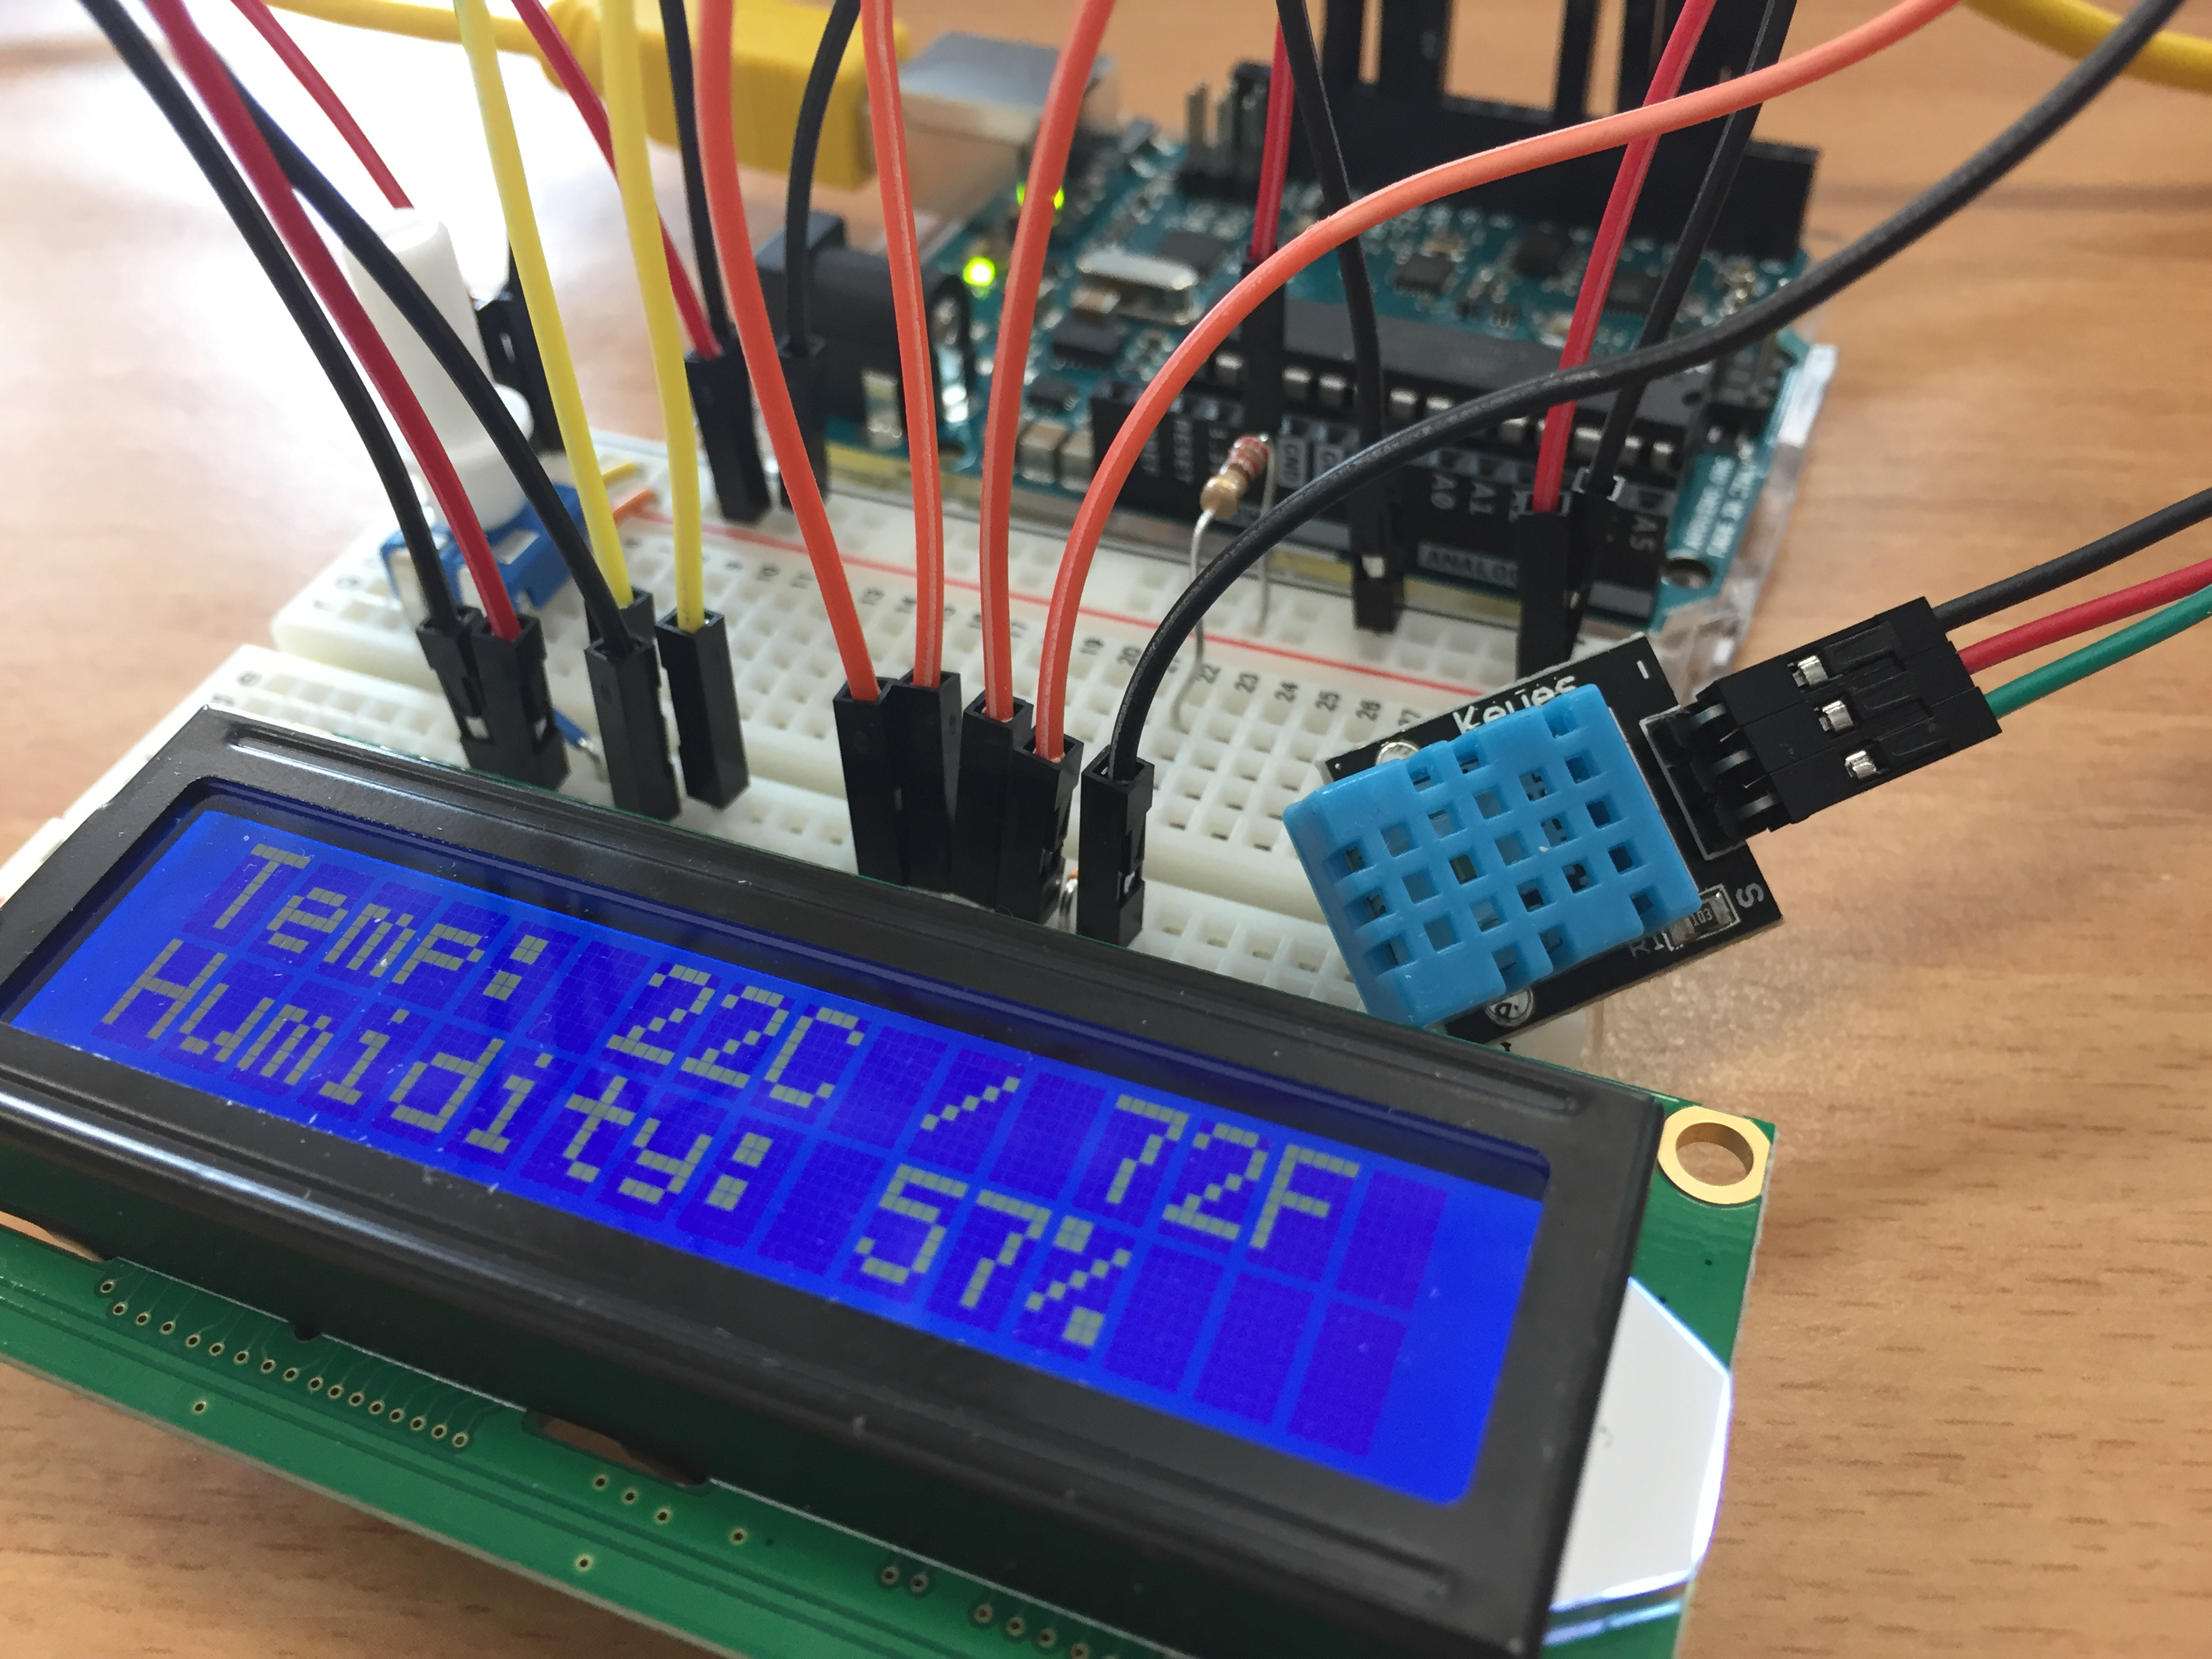 Arduino Uno with DHT11 temperature and humidity sensor data displayed on LCD